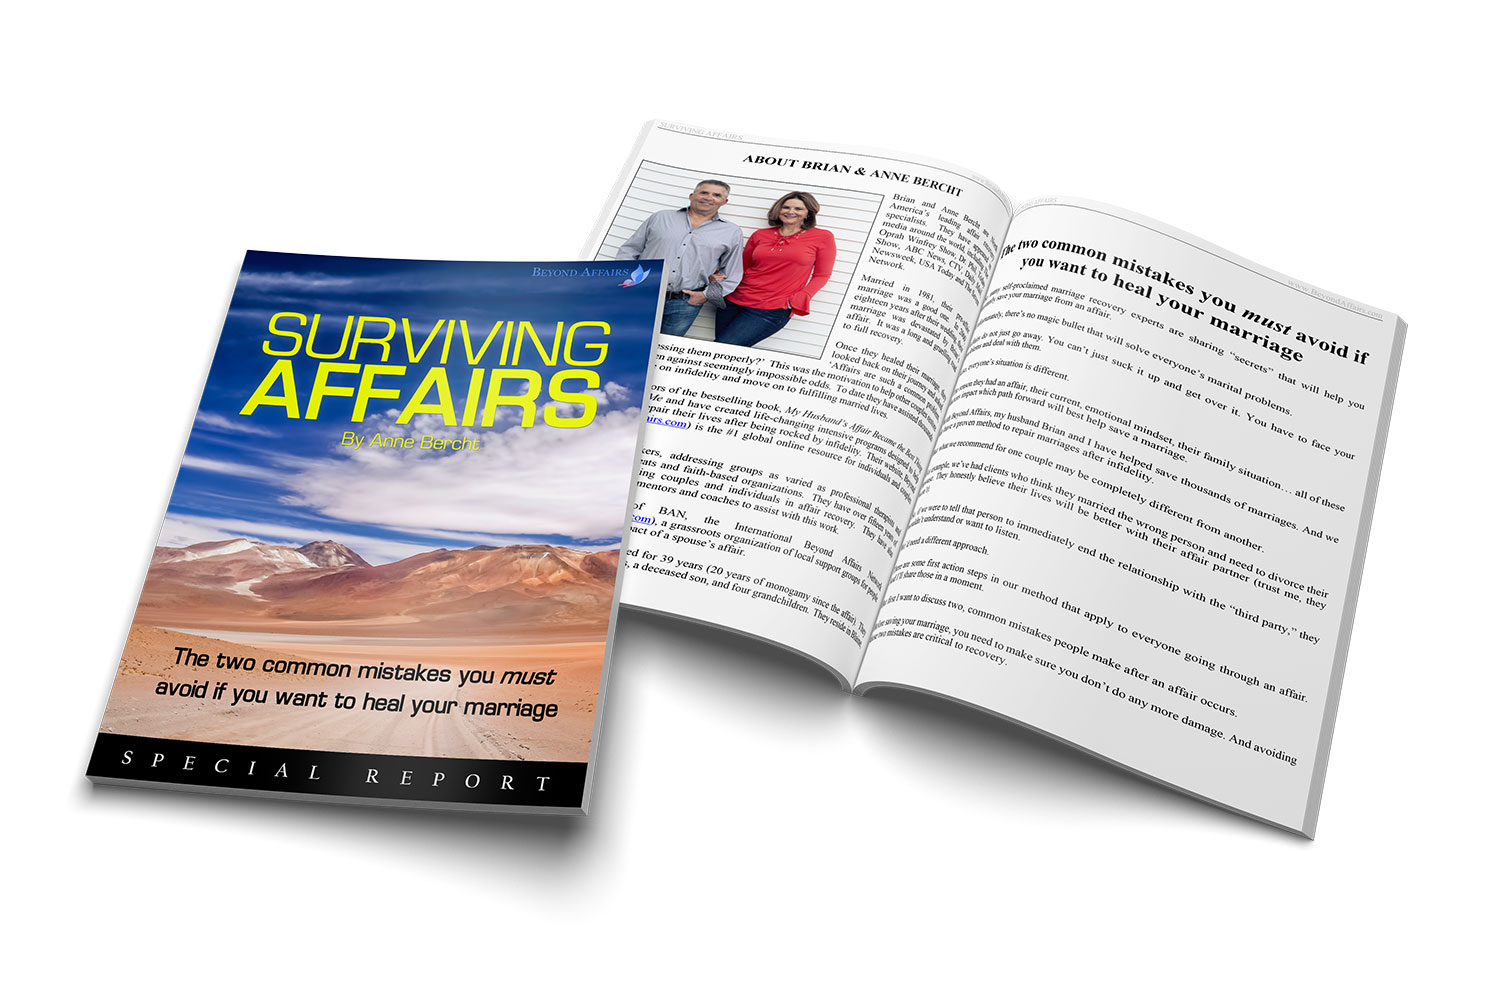 Beyond Affairs special report titled Surviving Affairs The two common mistakes you must avoid if you want to heal your marriage